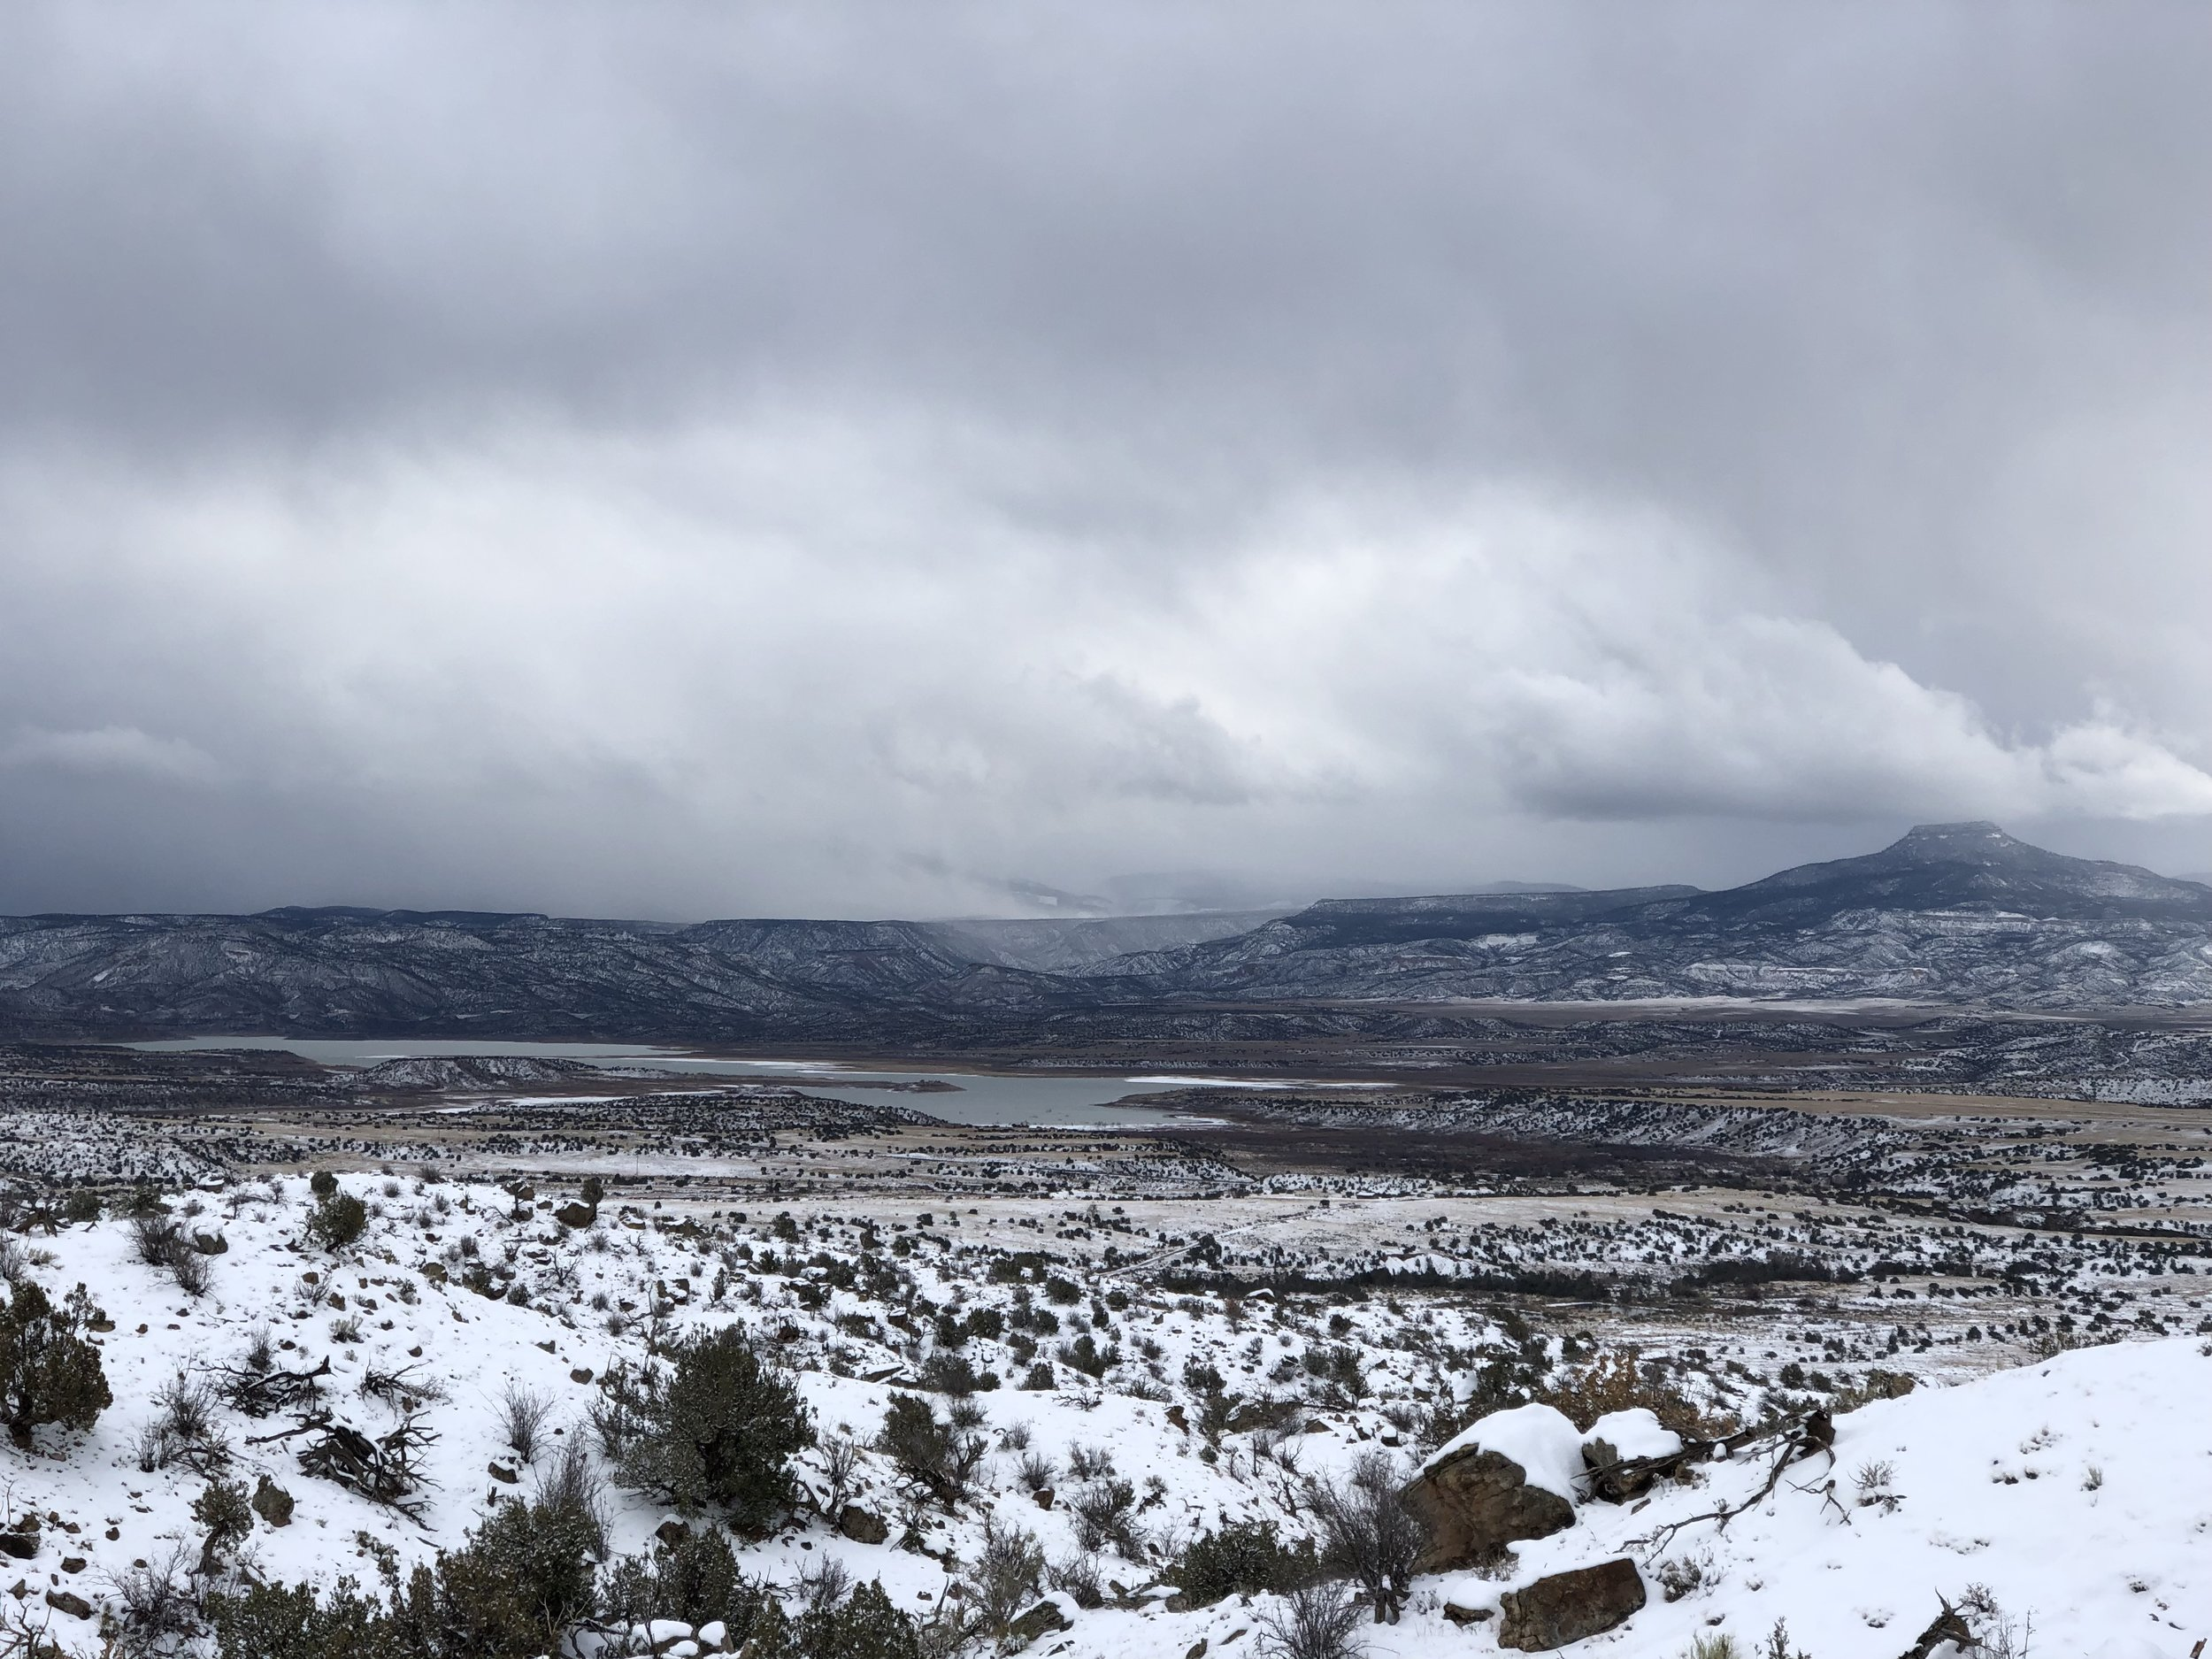 Looking out over Abiquiu Lake